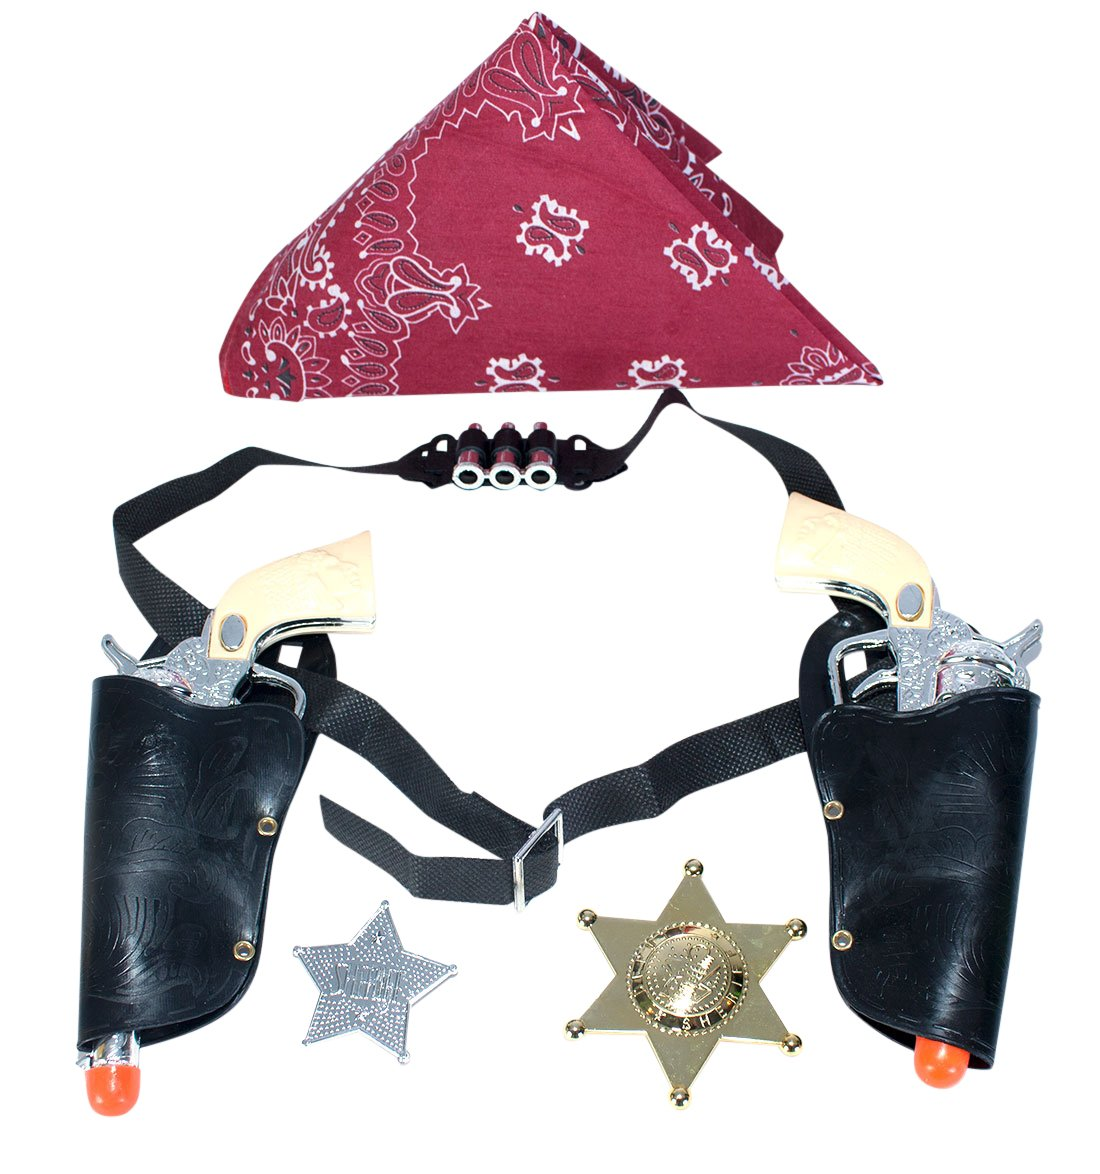 Imprints Plus Western Cowboy Gun Set with Red Bandanna, Gold and Silver Badge 1 of Each Item Rhode Island Novelty